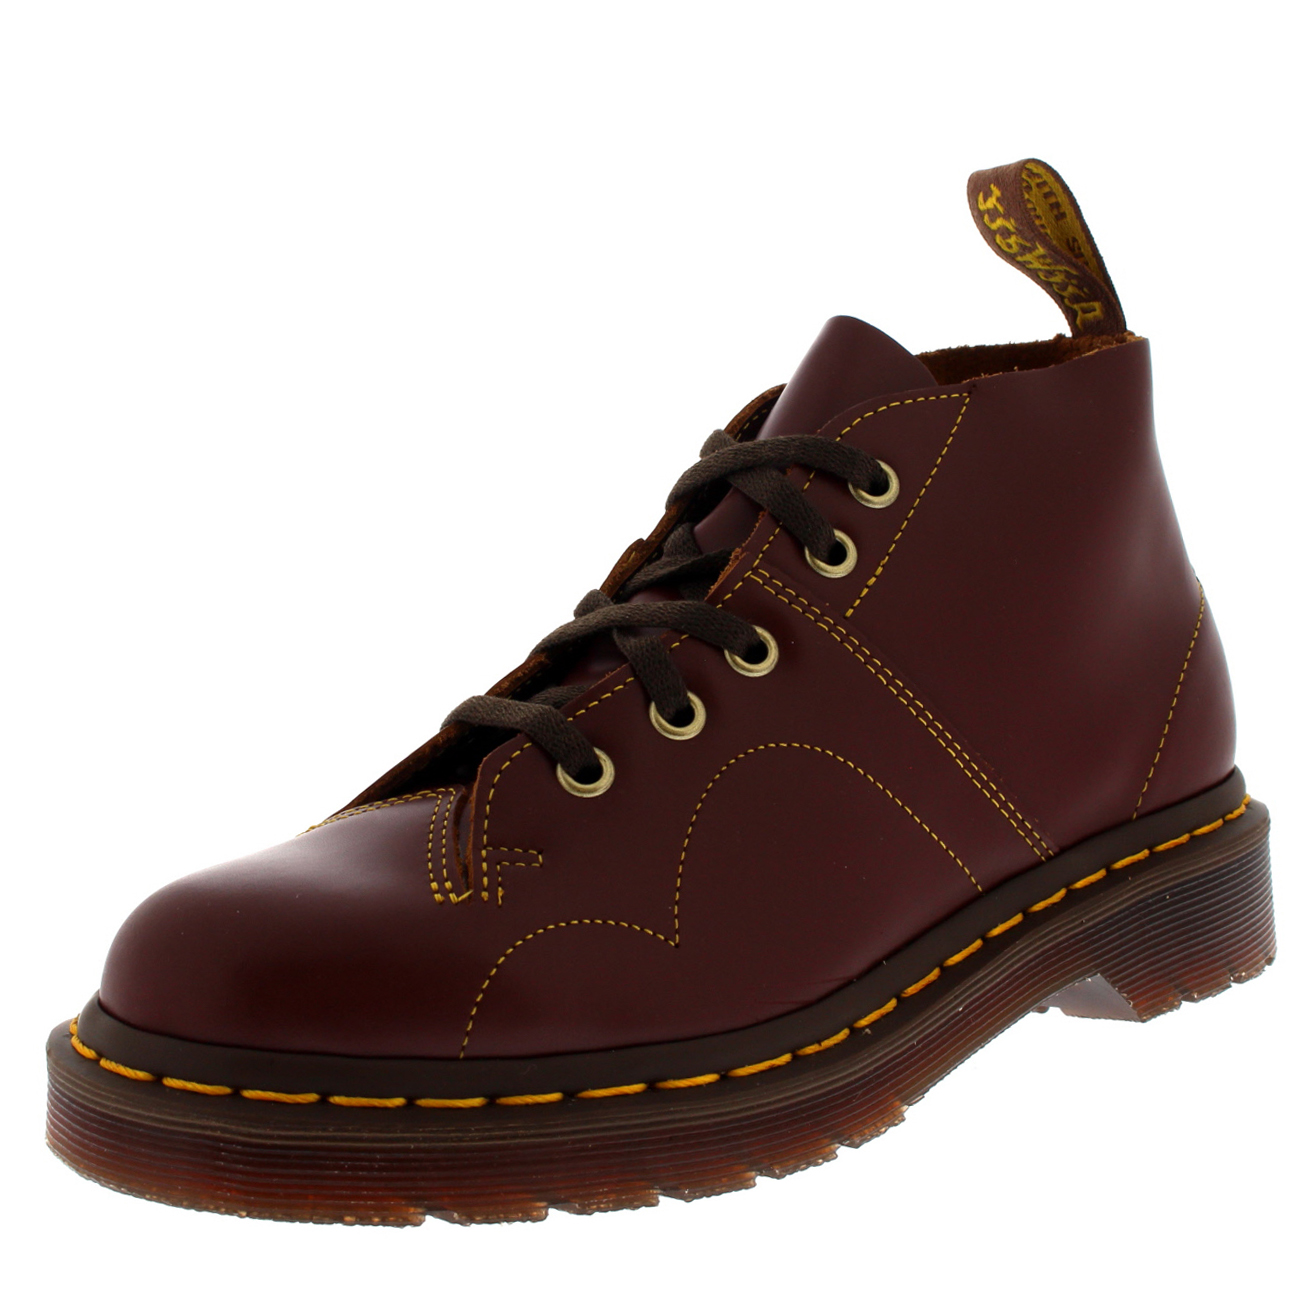 unisex adults dr martens church doc martens fashion casual flat boots all sizes ebay. Black Bedroom Furniture Sets. Home Design Ideas